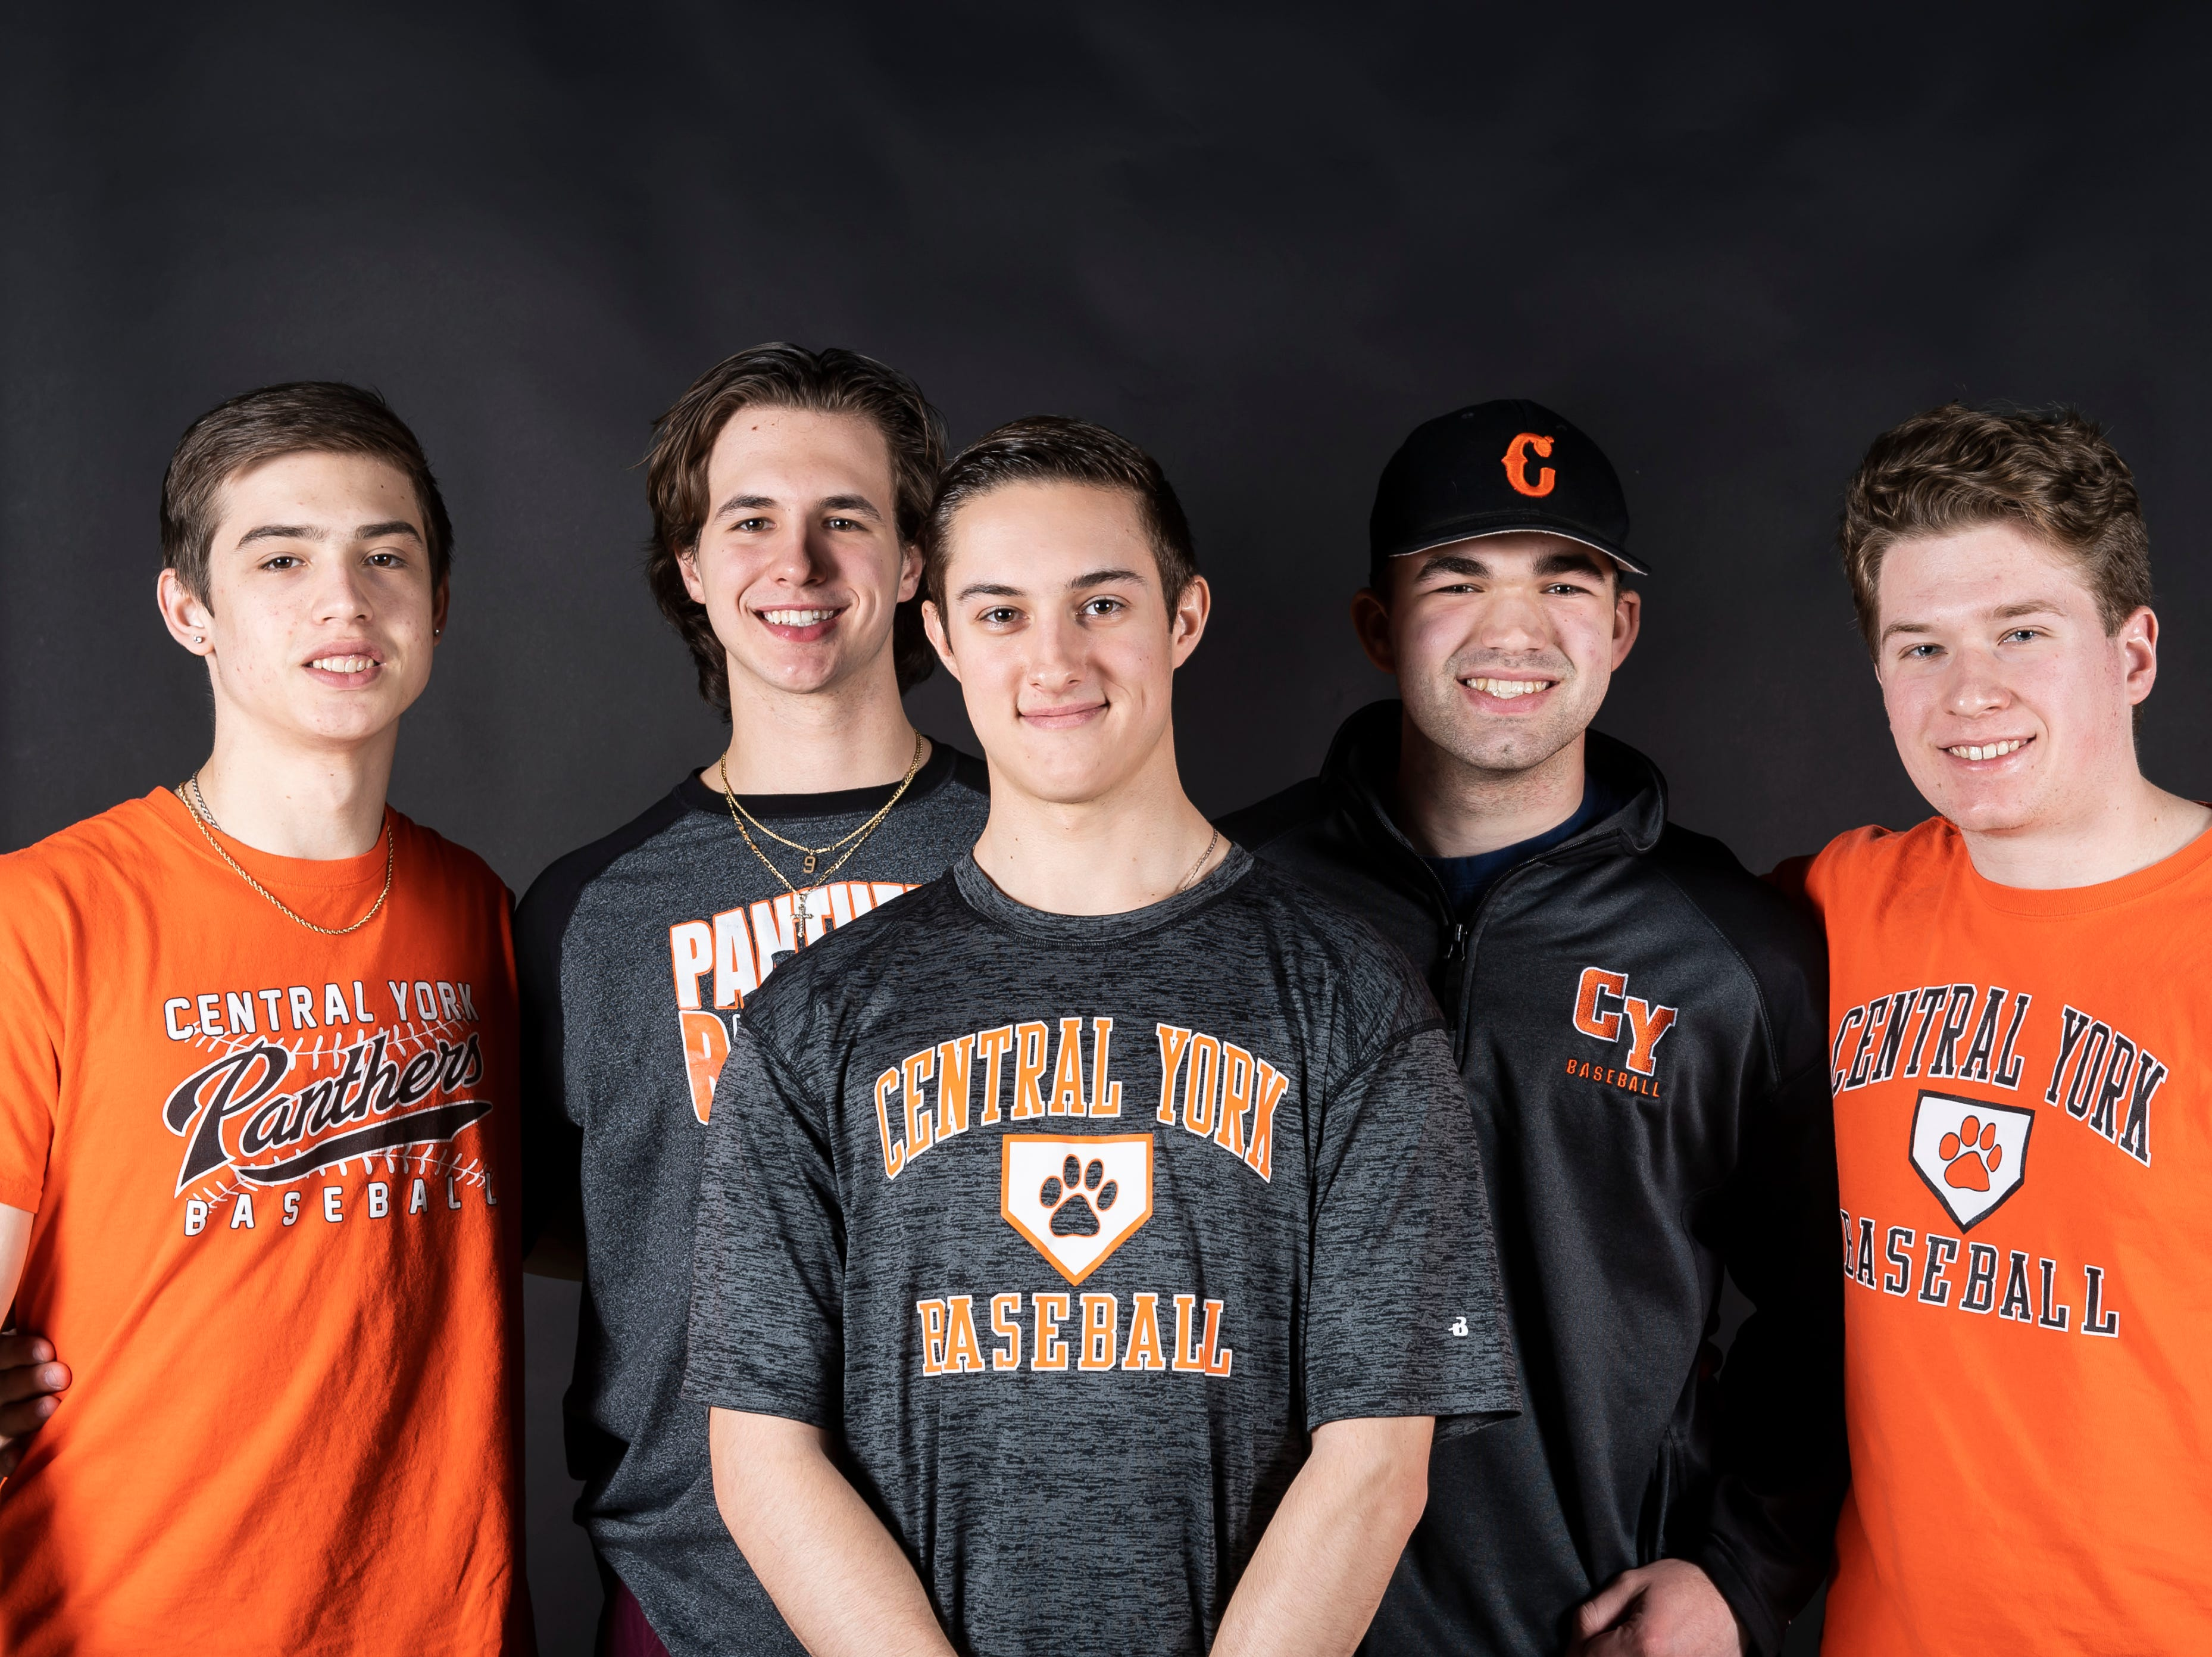 (From left) Central York baseball players Ryan Pepler, Landon Ness, Michael Livingston, Nathan Marquard and Ben Peterson pose in the GameTimePA photo booth during spring sports media day in York Sunday, March 10, 2019.